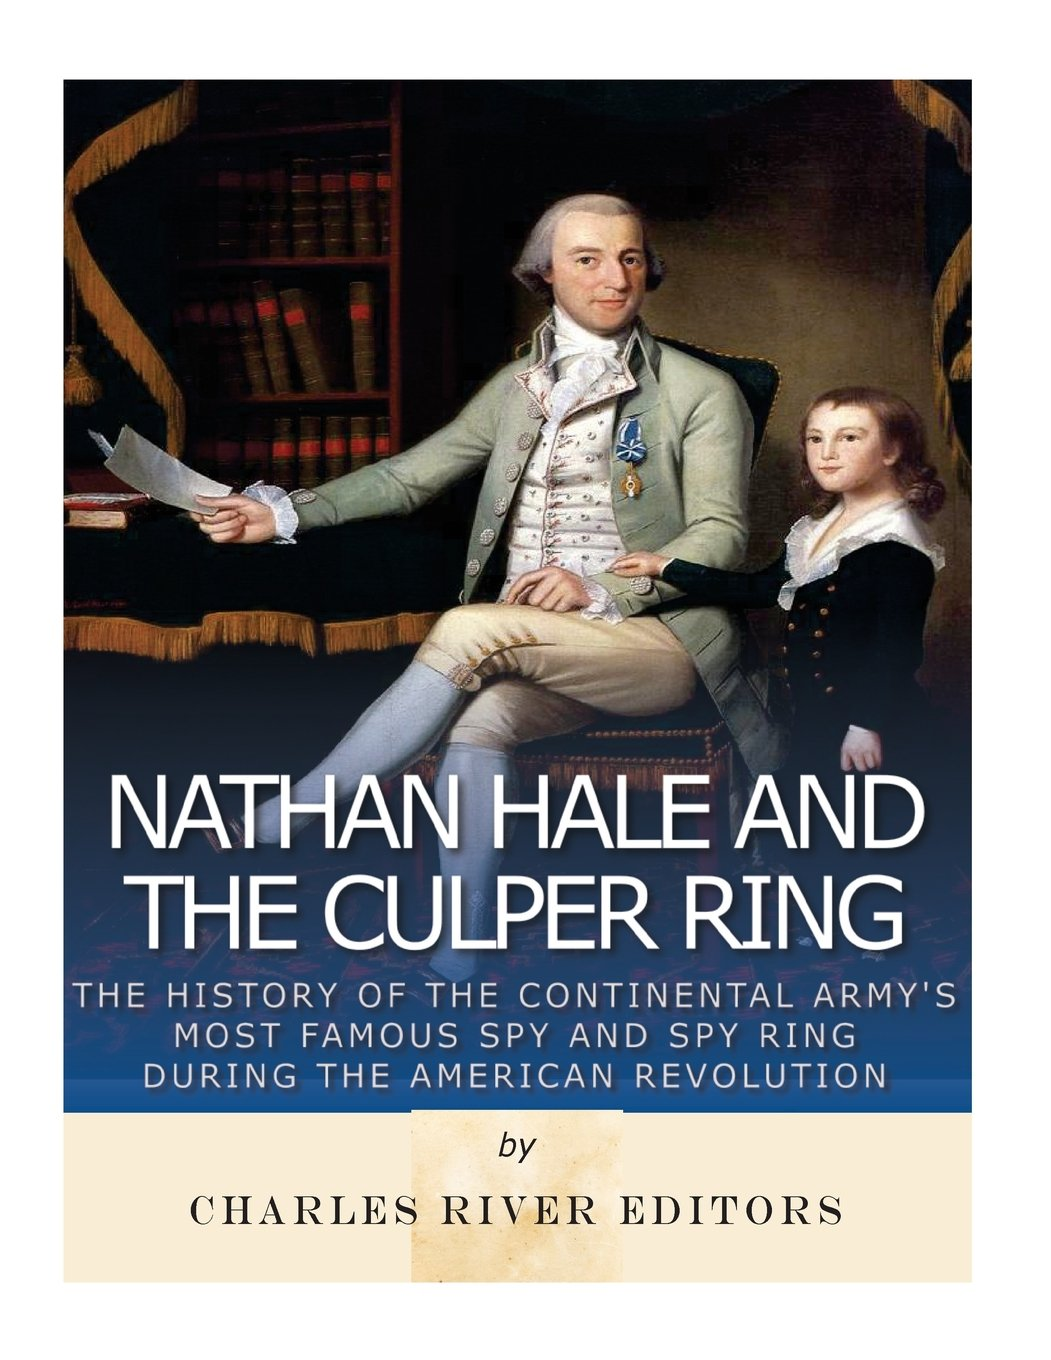 Nathan Hale and the Culper Ring: The History of the Continental Army's Most Famous Spy and Spy Ring during the American Revolution